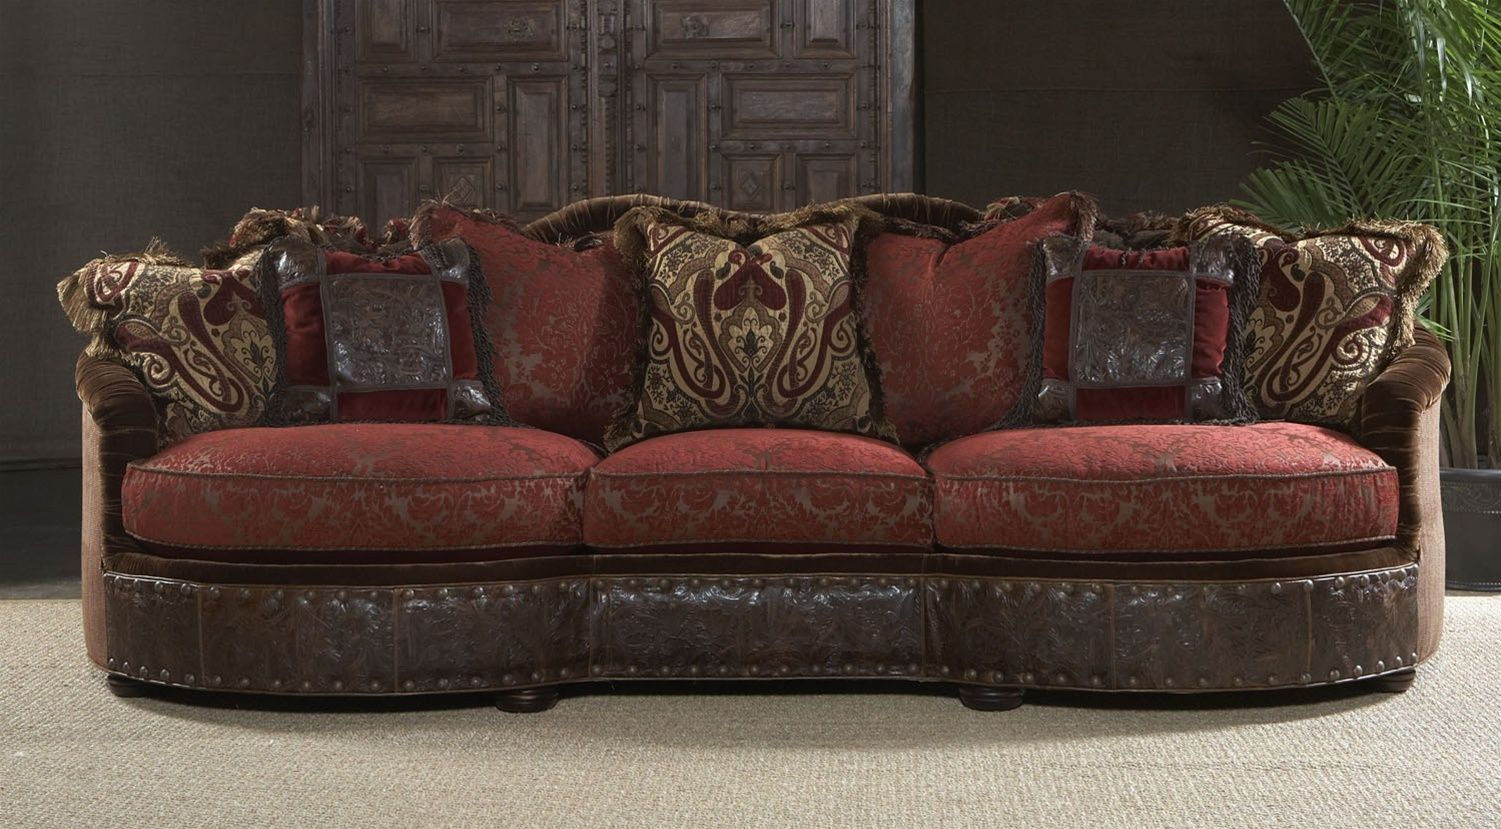 Luxury red burgundy sofa or couch. Bernadette Livingston Furniture offers a  superb collection of high end furniture and furnishings.